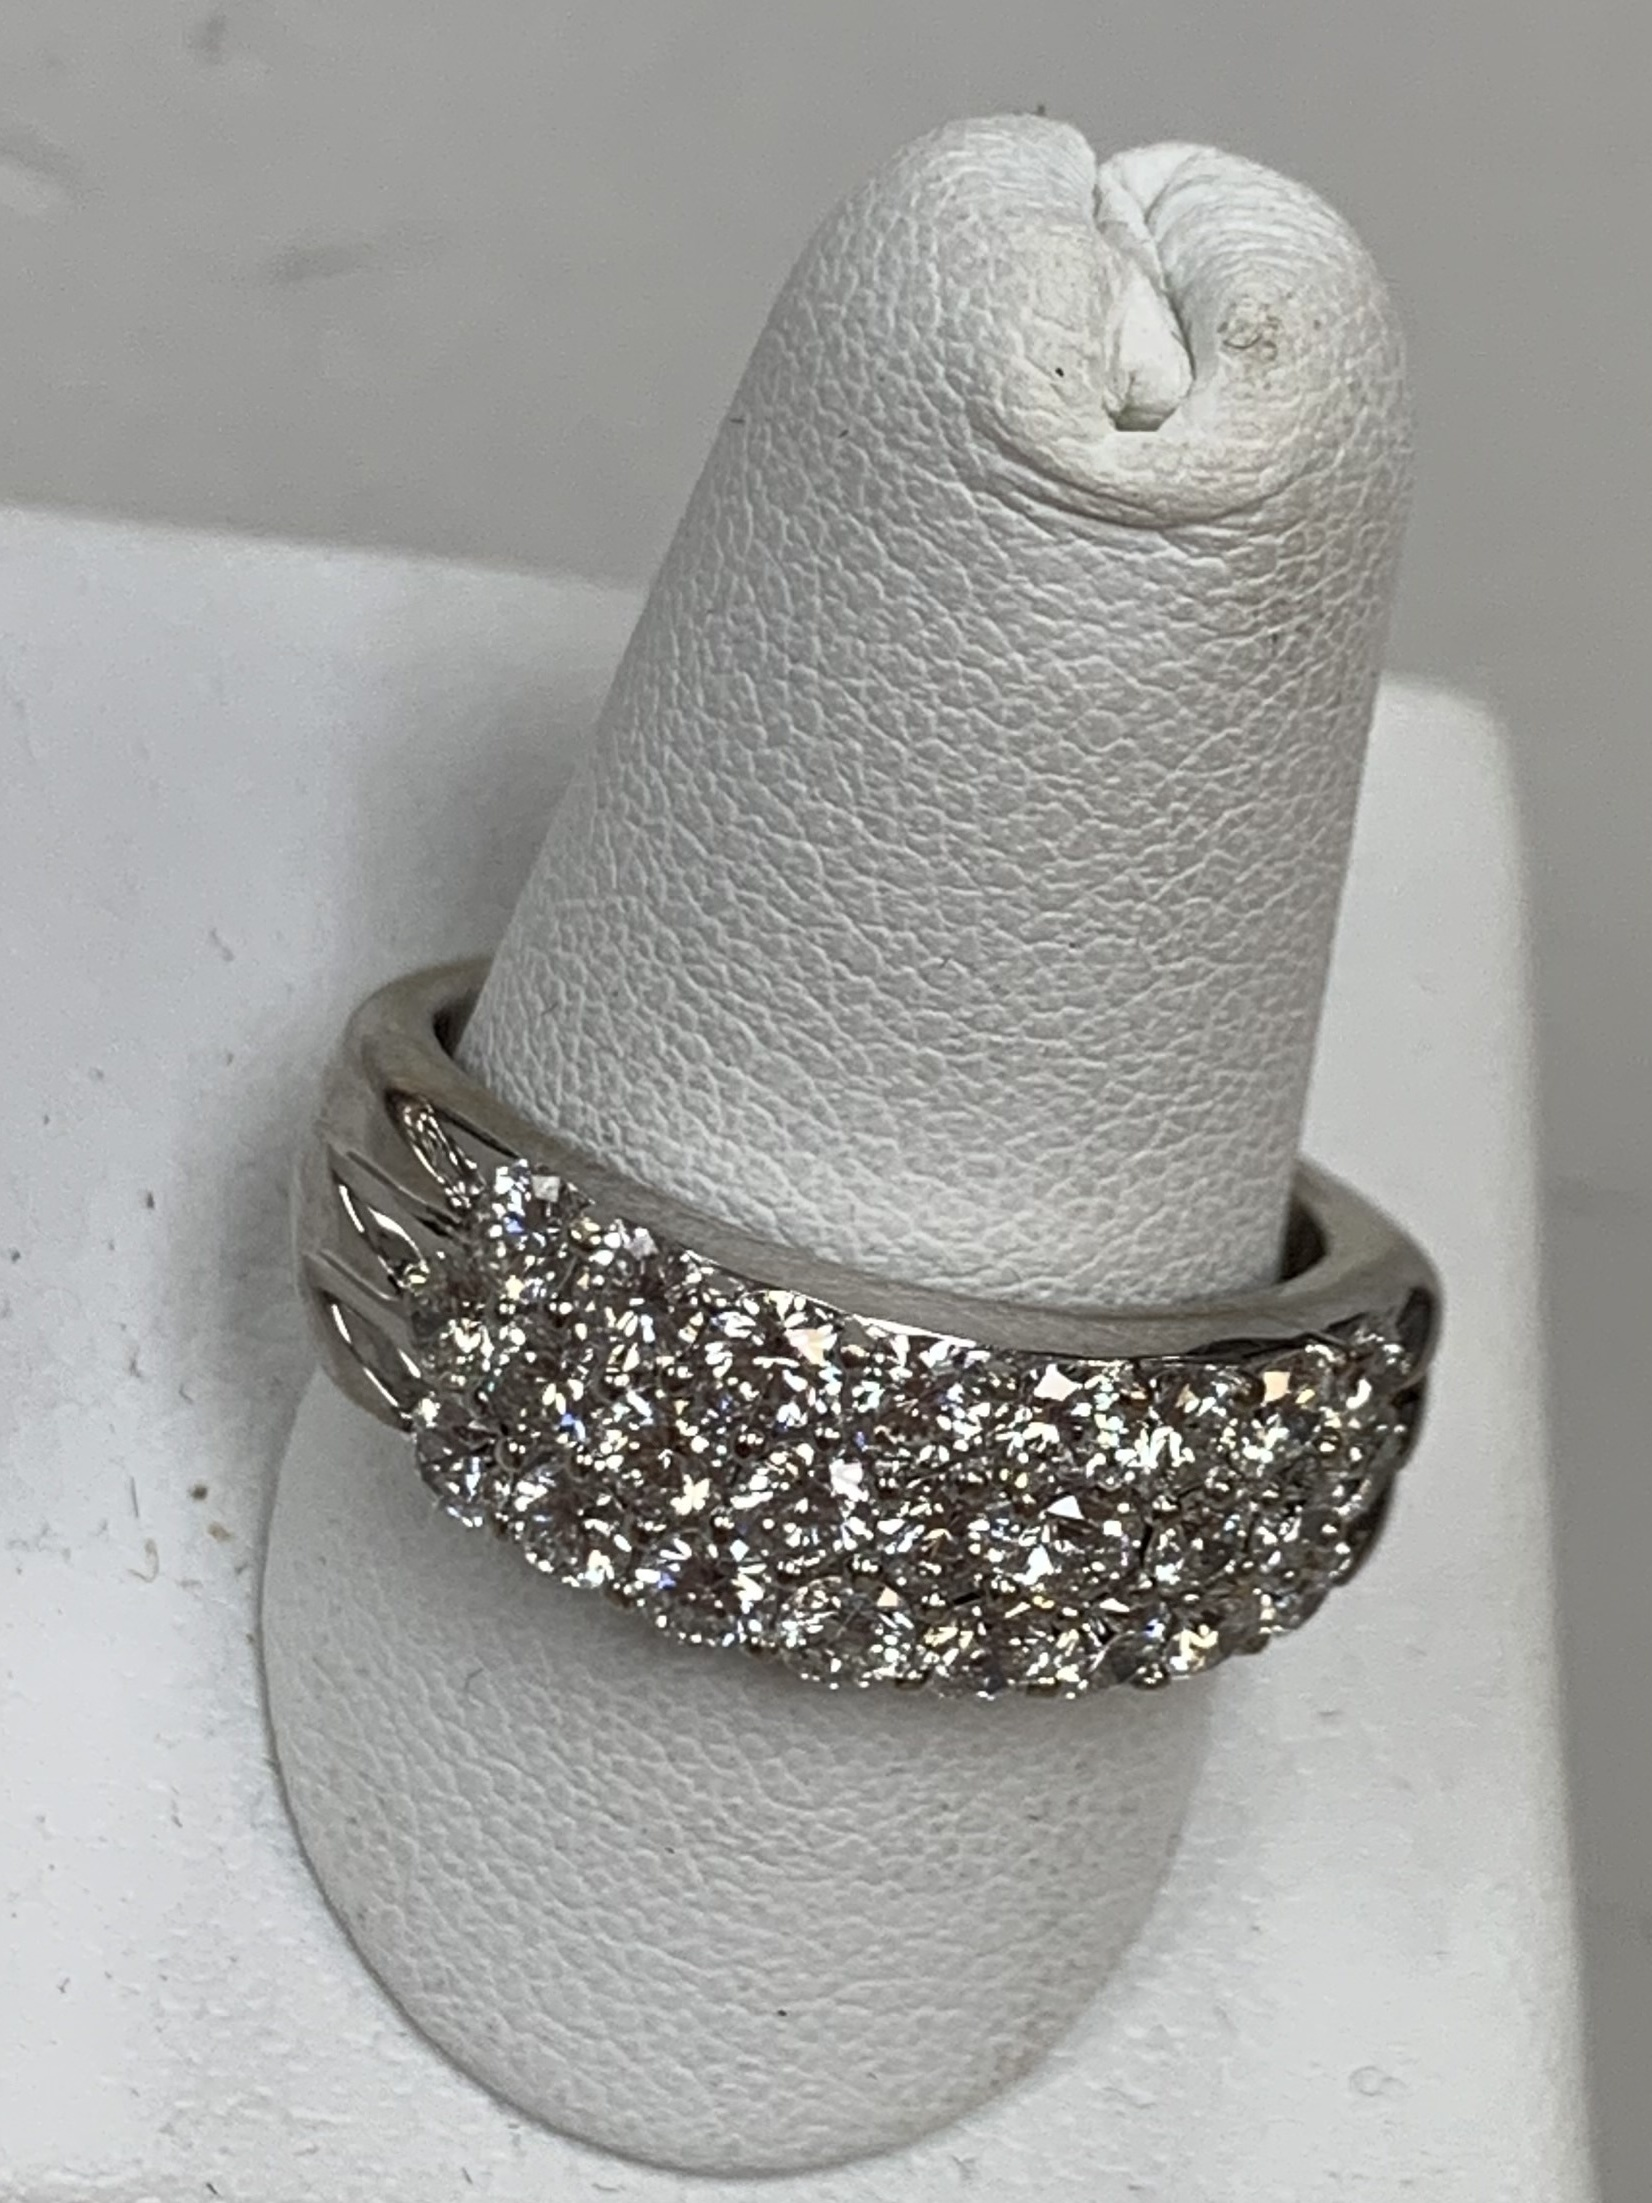 14 KT WHITE GOLD LEO ANNIVERSARY BAND WITH PAPERWORK